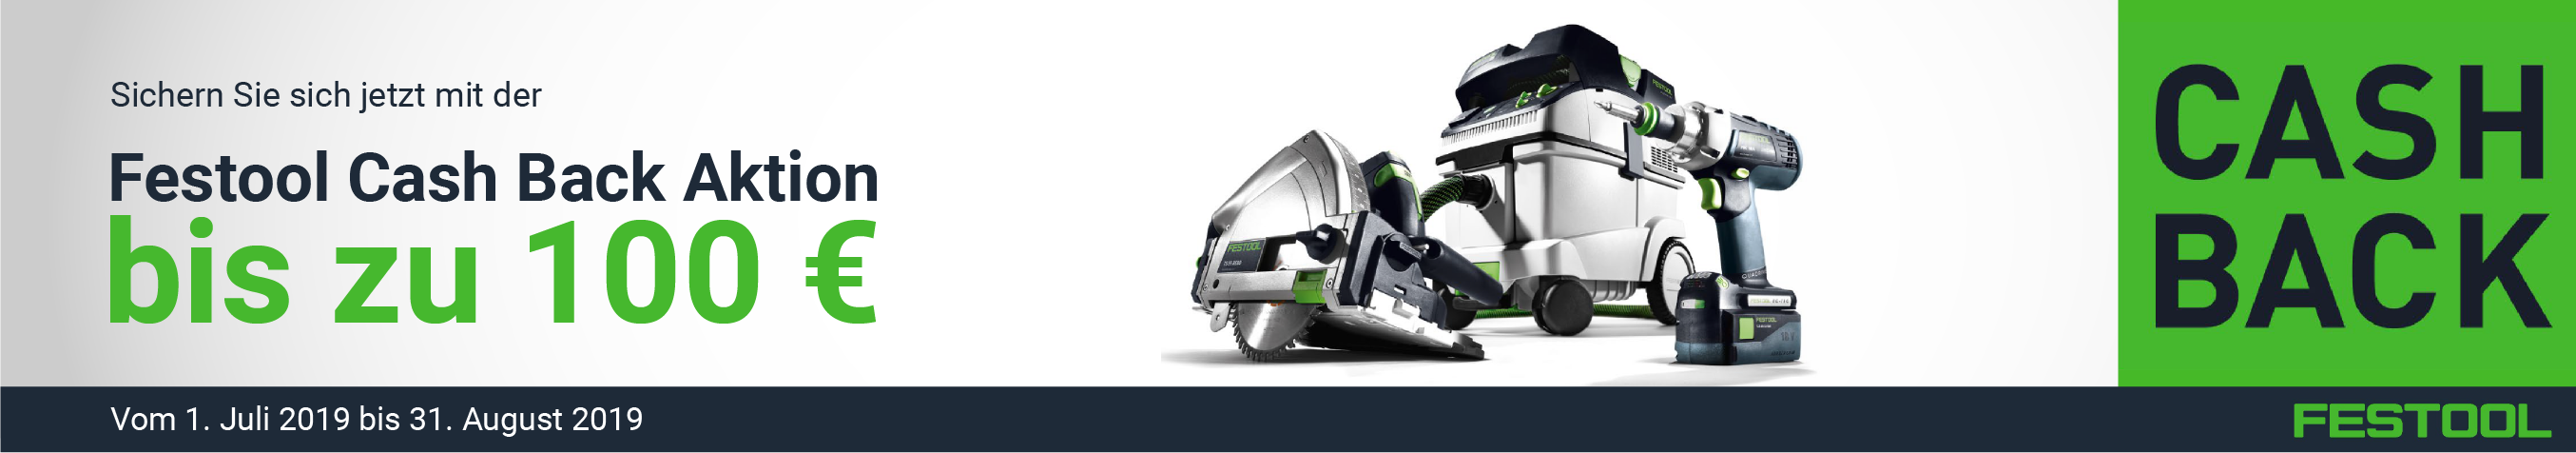 Festool Cashback Aktion